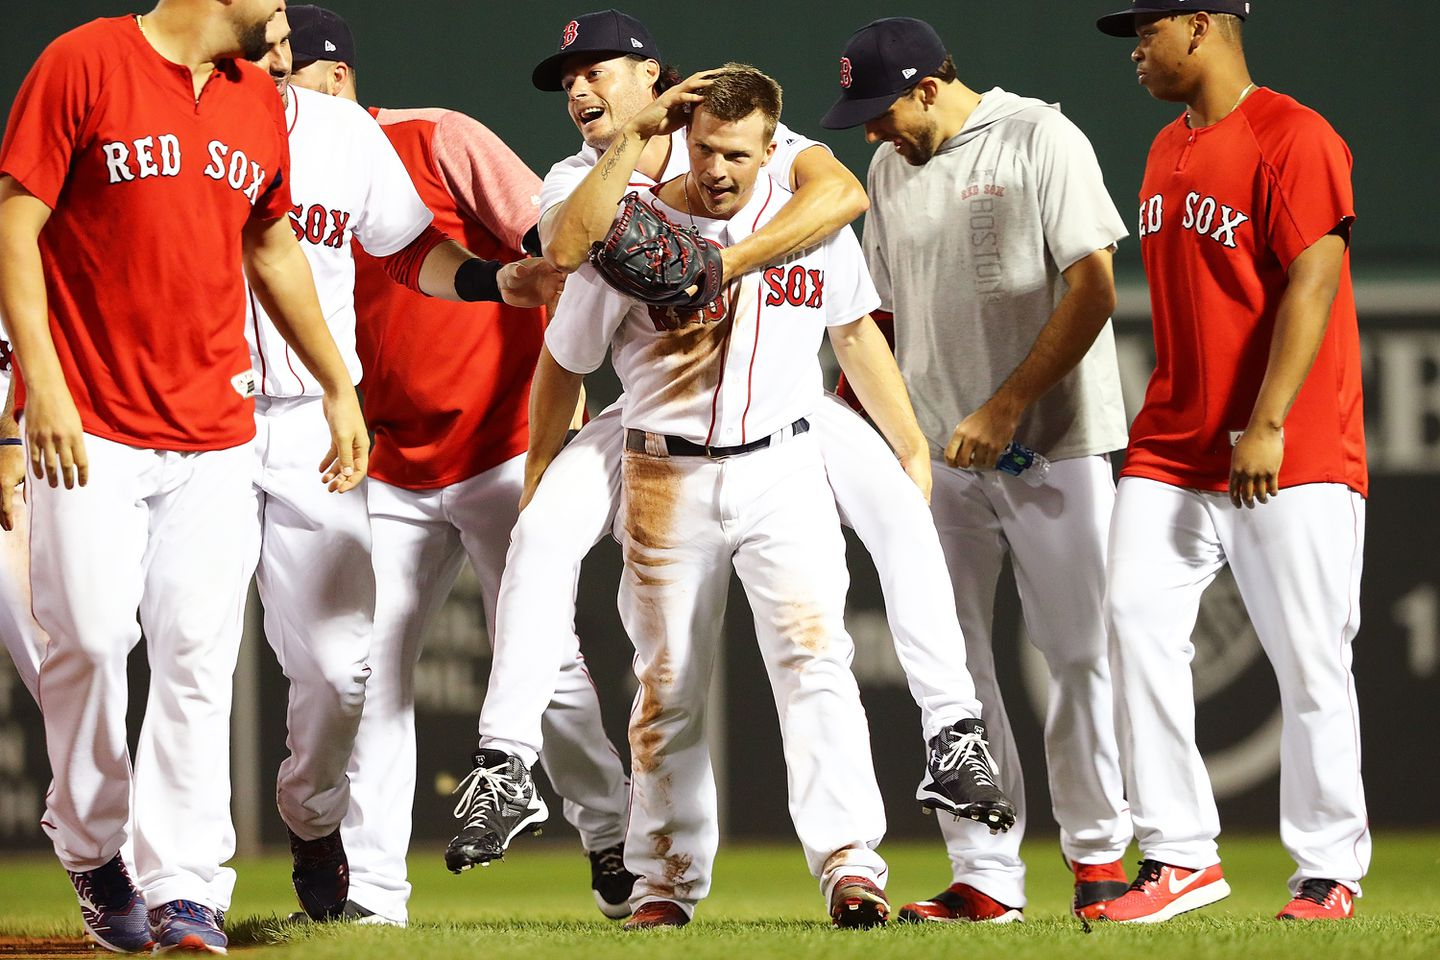 Tony Renda gave a piggy back ride to Joe Kelly after a victory over the Yankees.